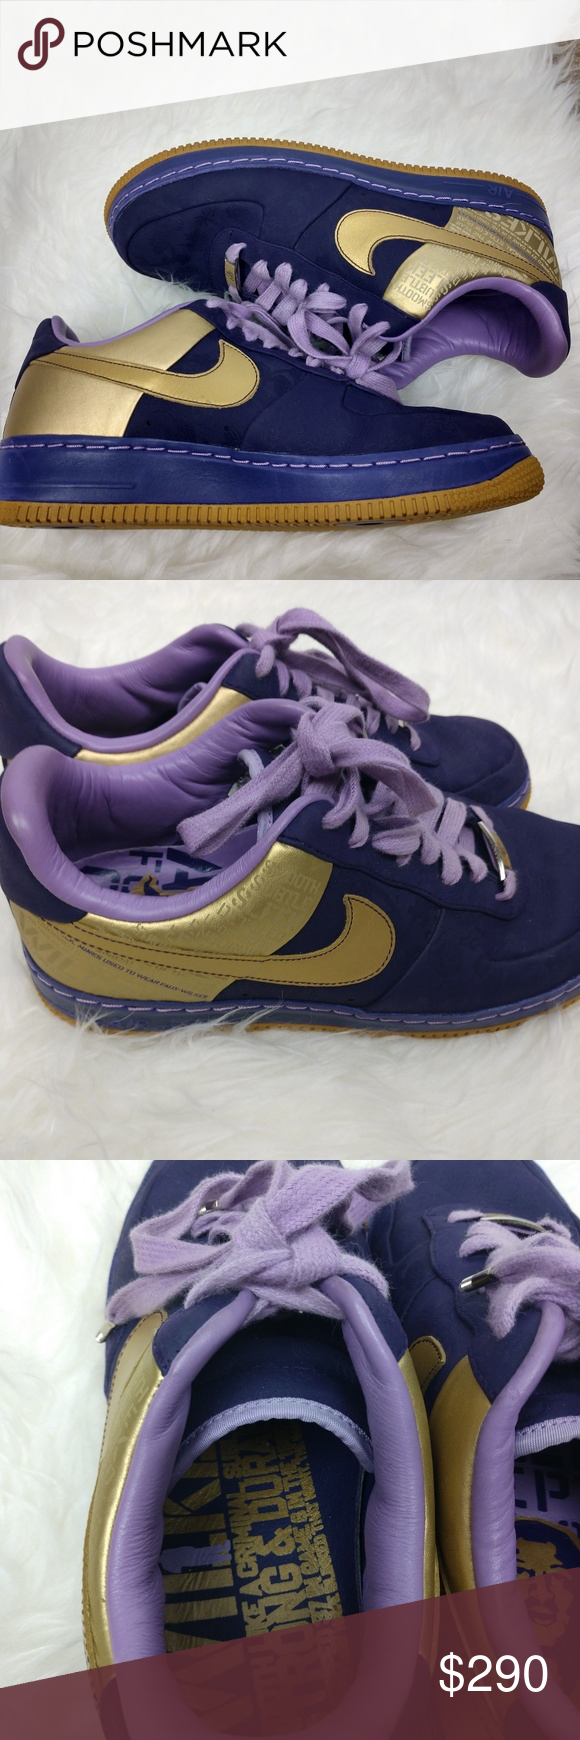 huge selection of ce53c f1c1a New Rare Nike Air Force One Wilkes Sneakers Gold New Nike Air Force One  Wilkes Purple  Gold Collectors sneakers. Brand new never worn!